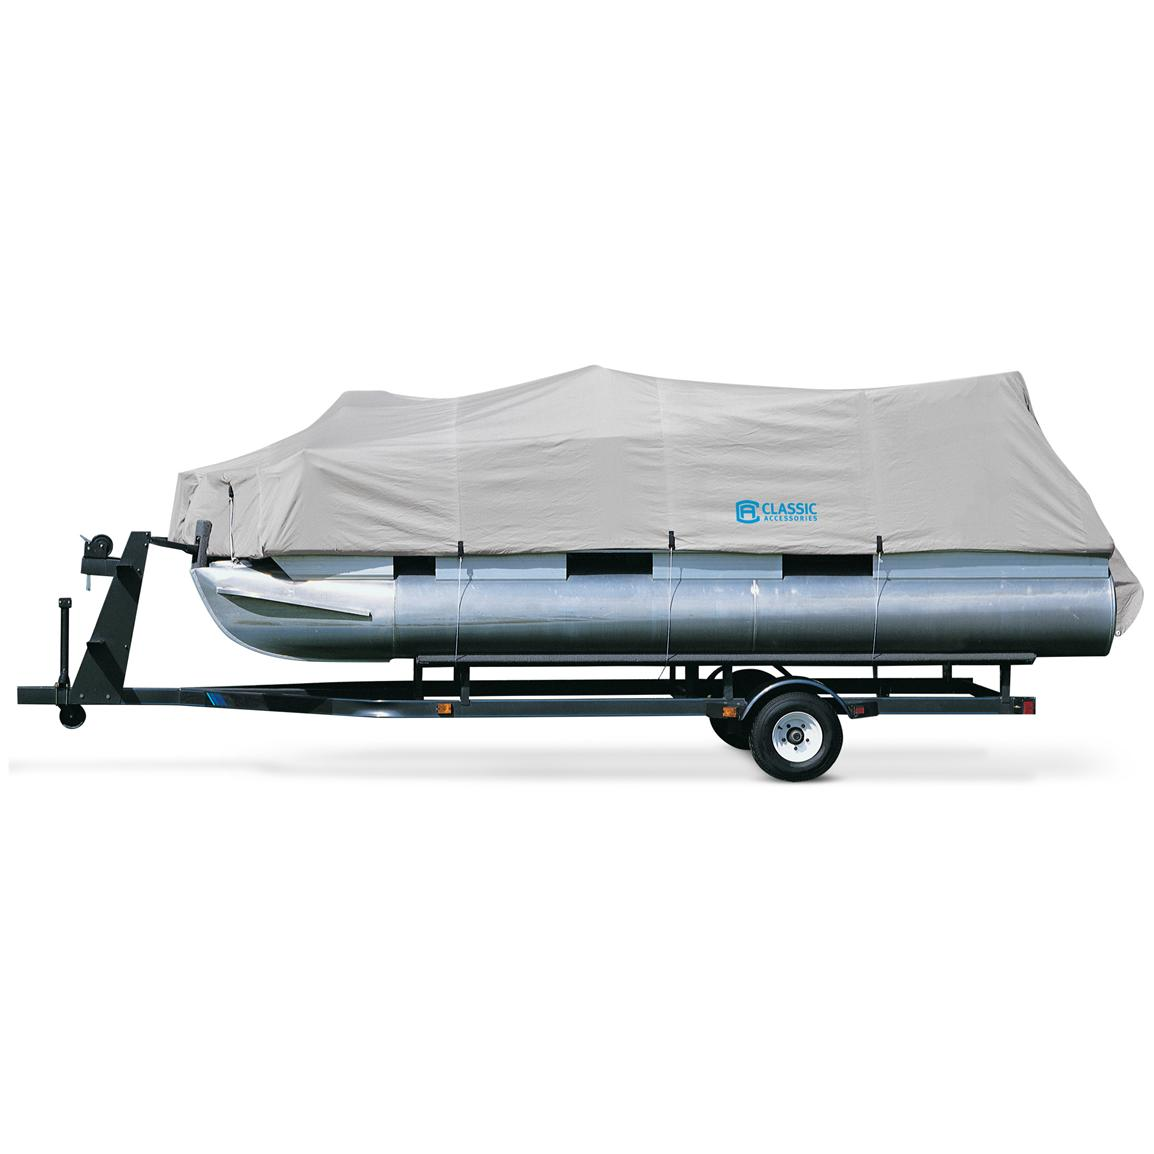 Classic Accessories® Hurricane™ Pontoon Cover